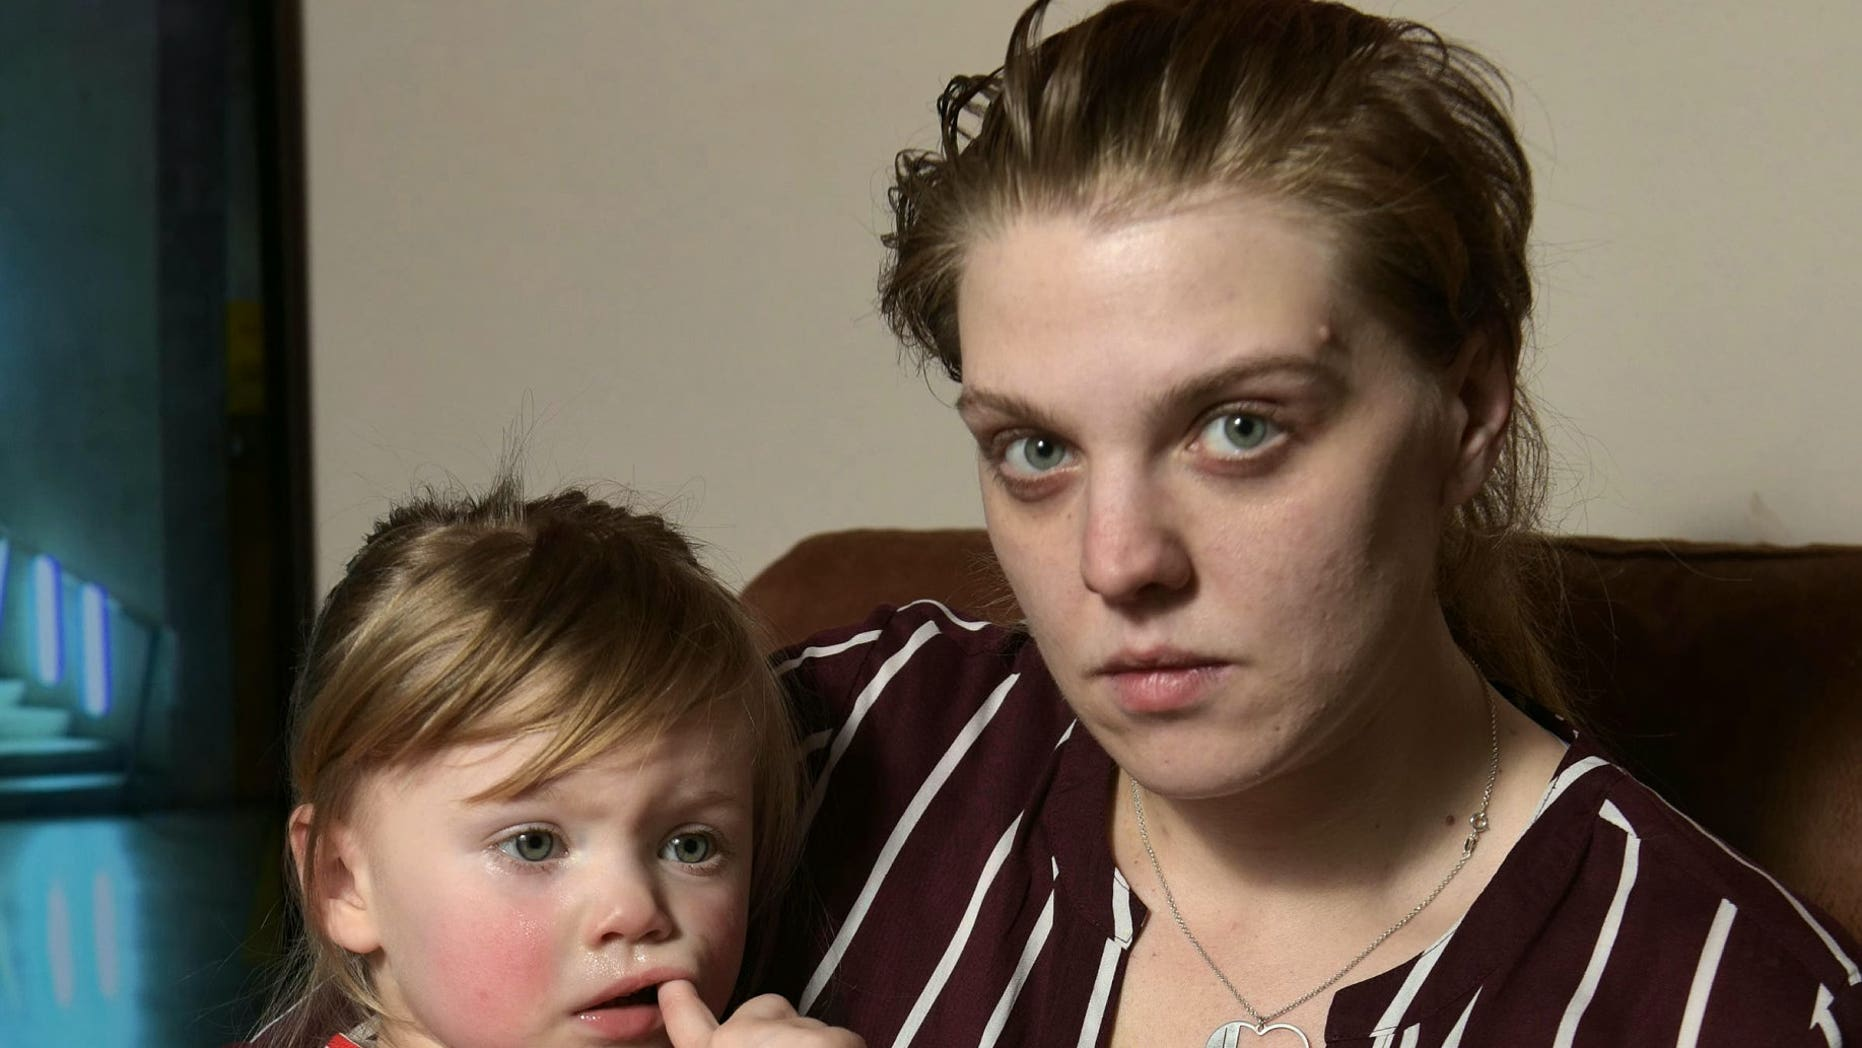 Charlotte Downie claims she found glass in her daughter's Little Angels diaper.